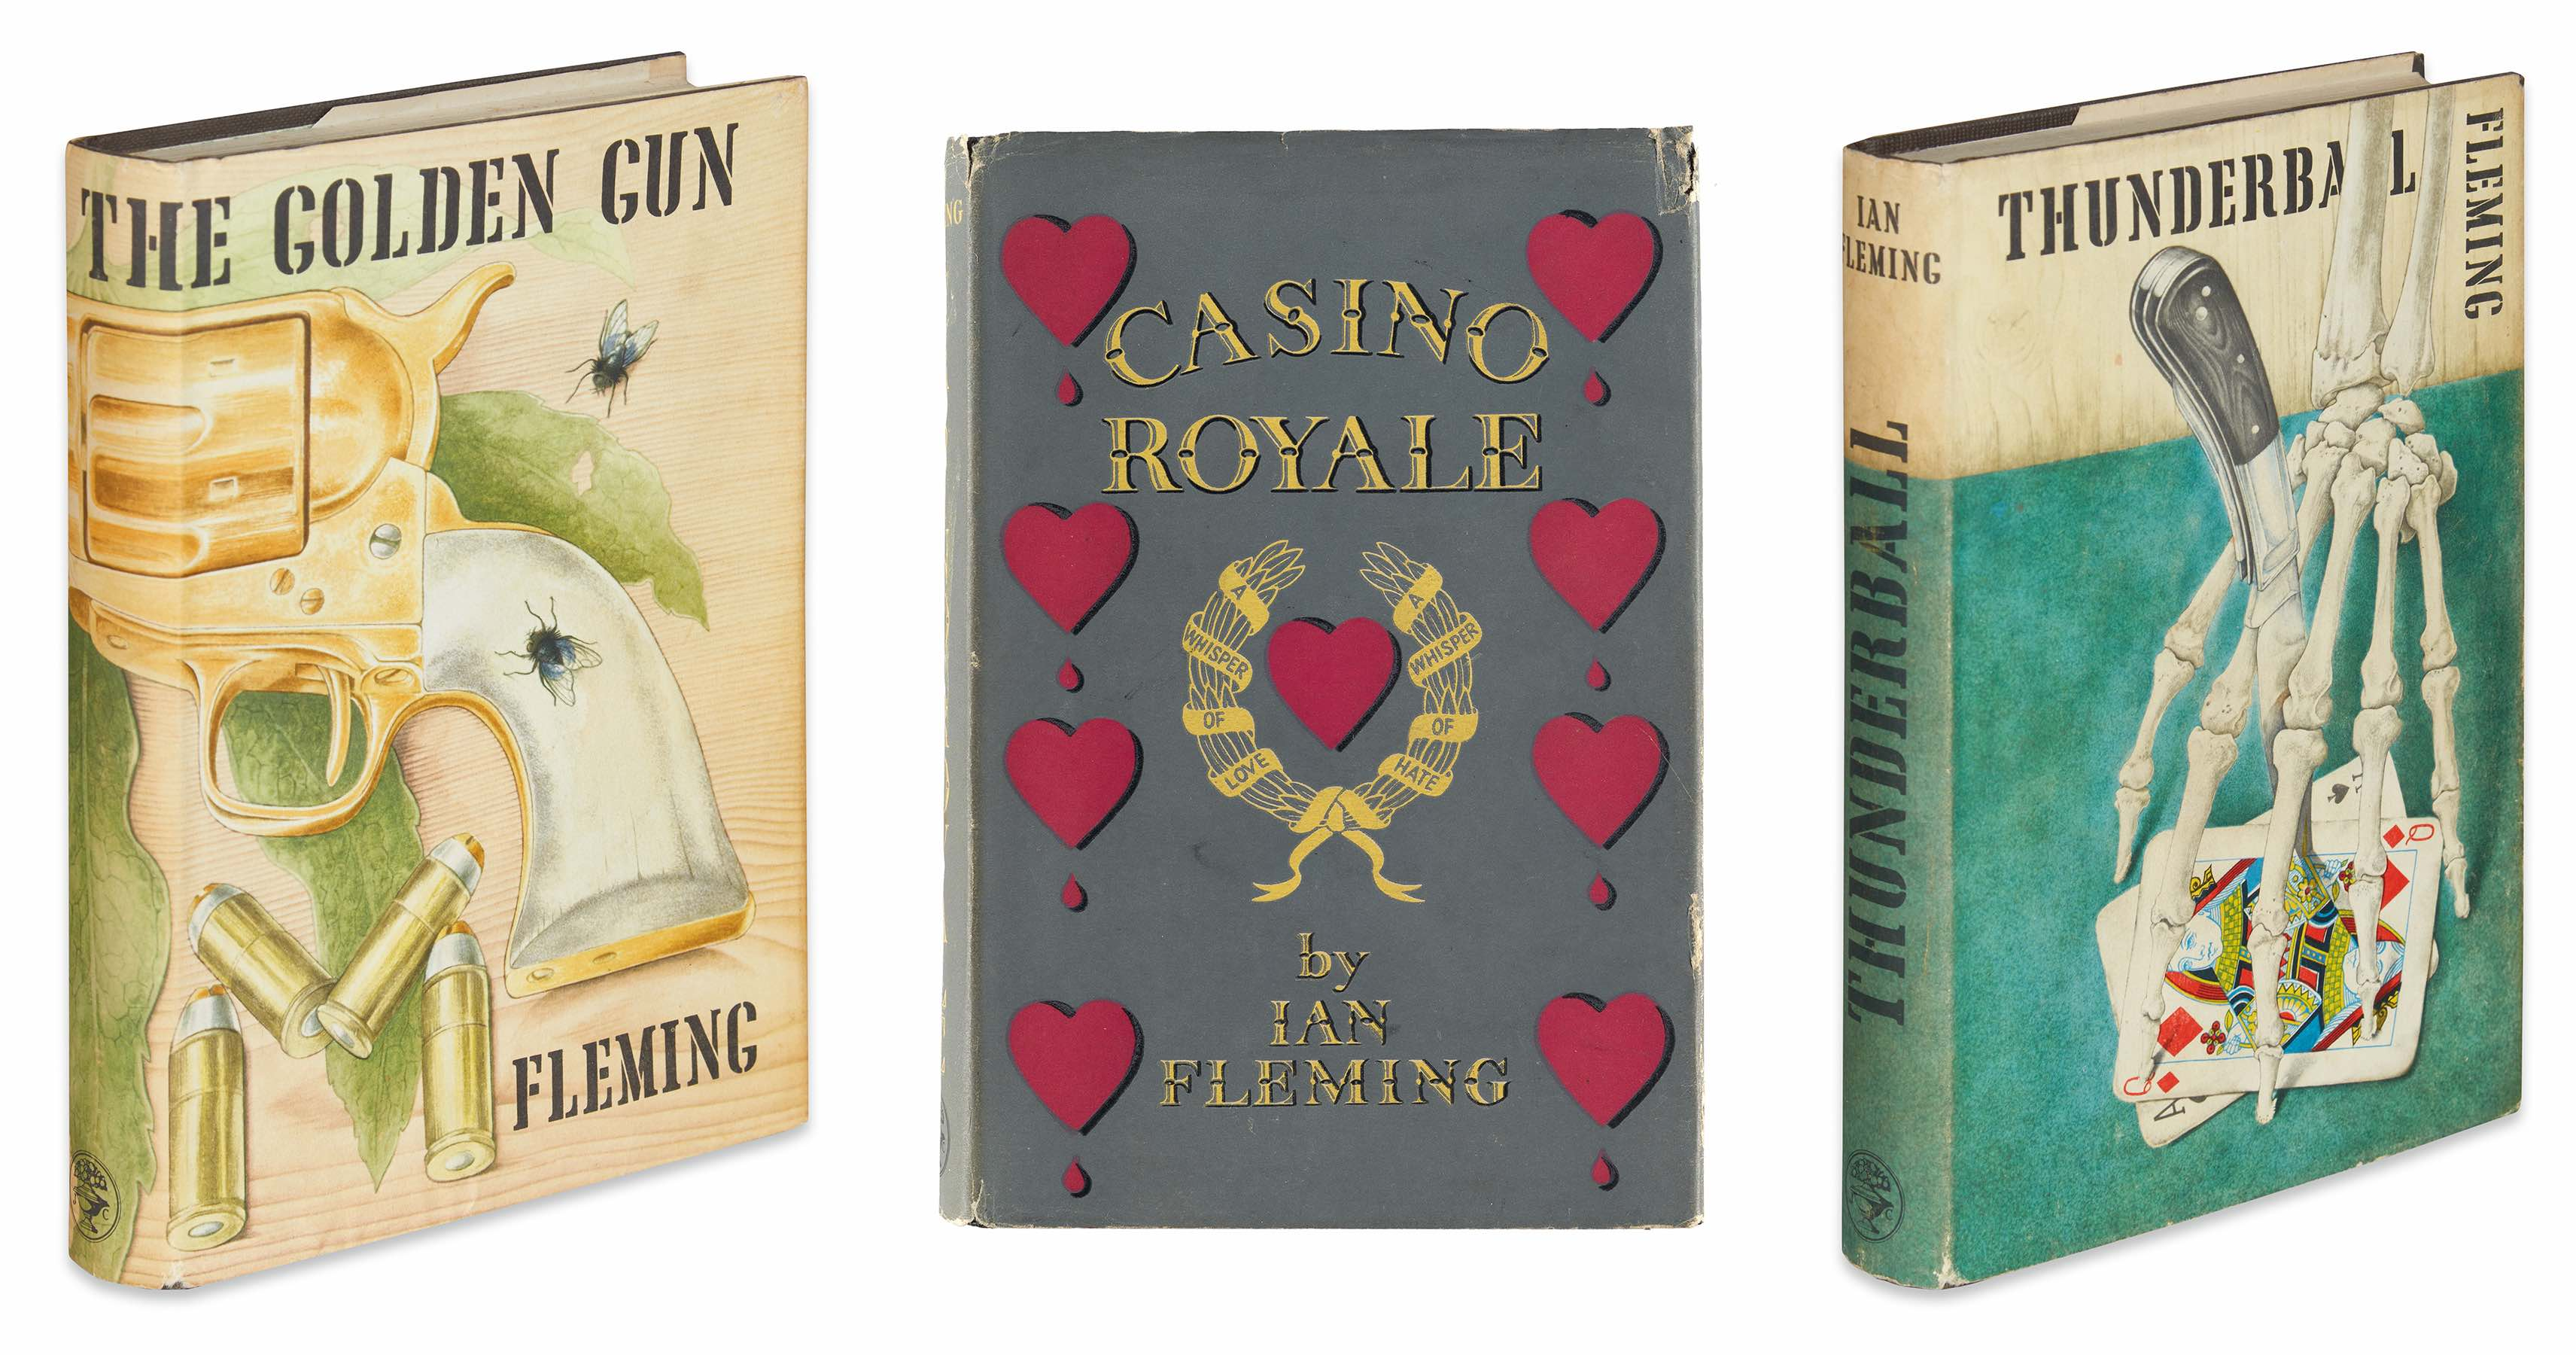 Ian Fleming first editions